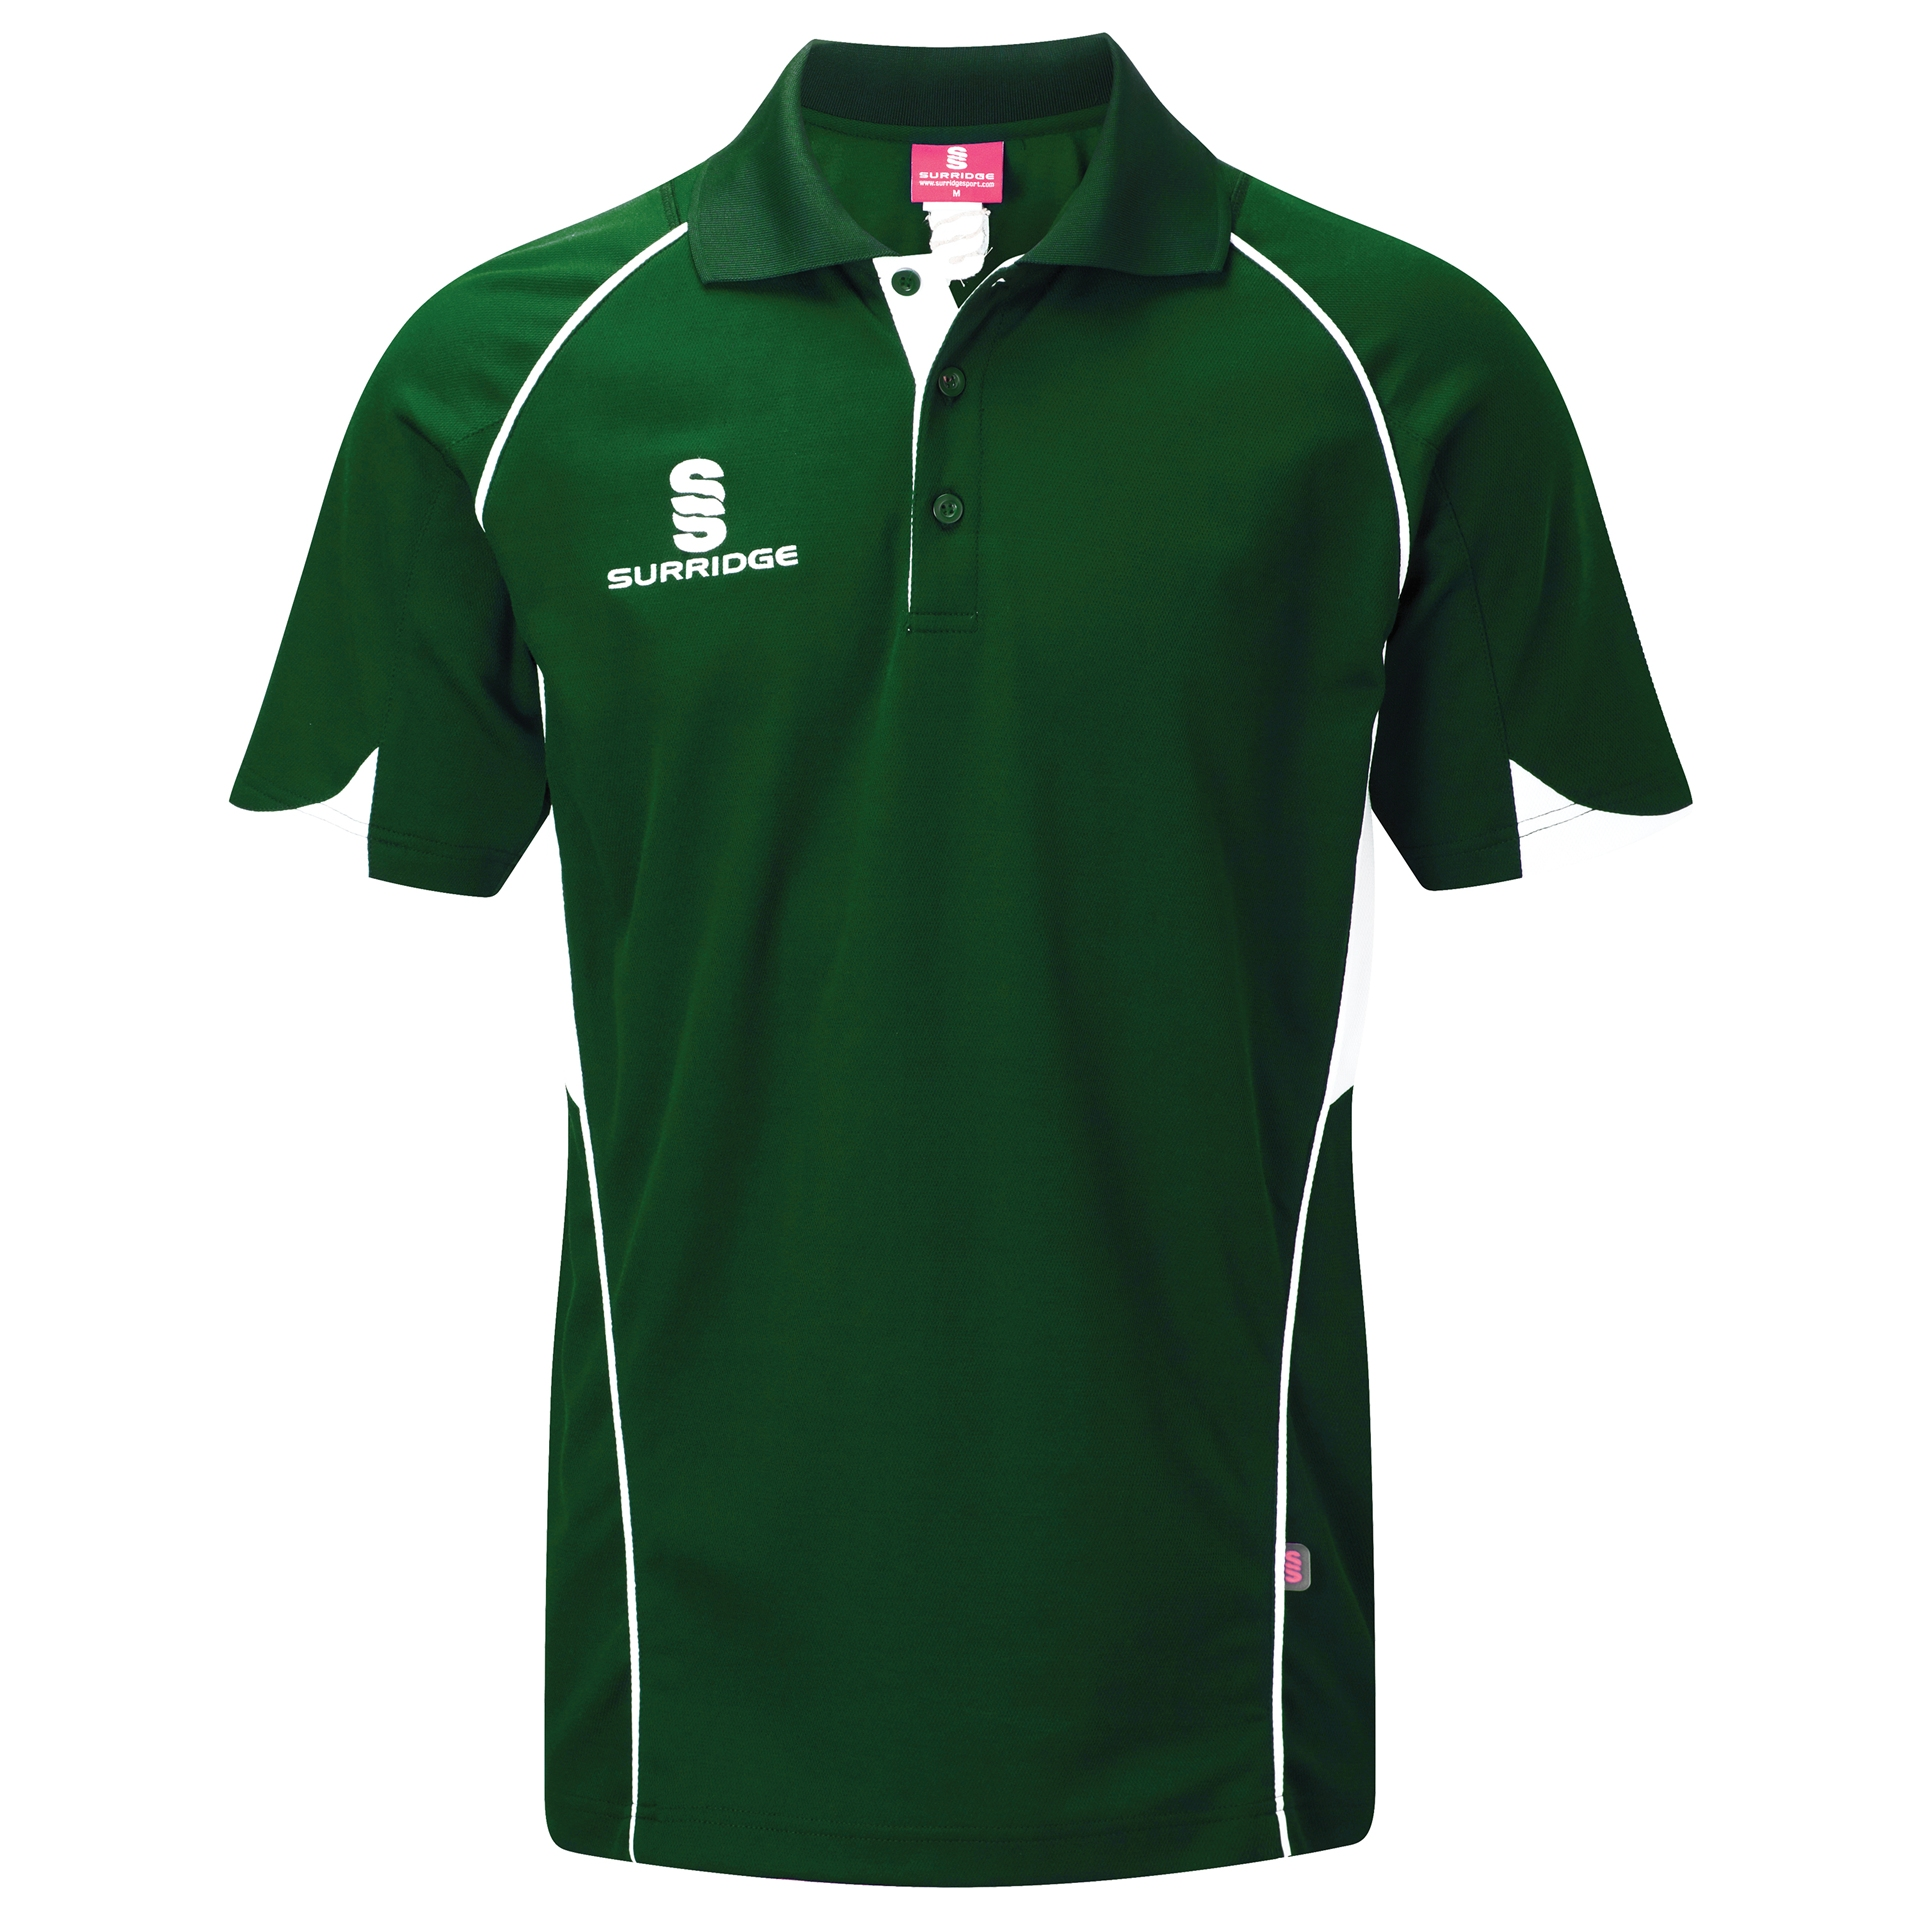 Surridge Sport - Curve Polo Shirt - Green/White